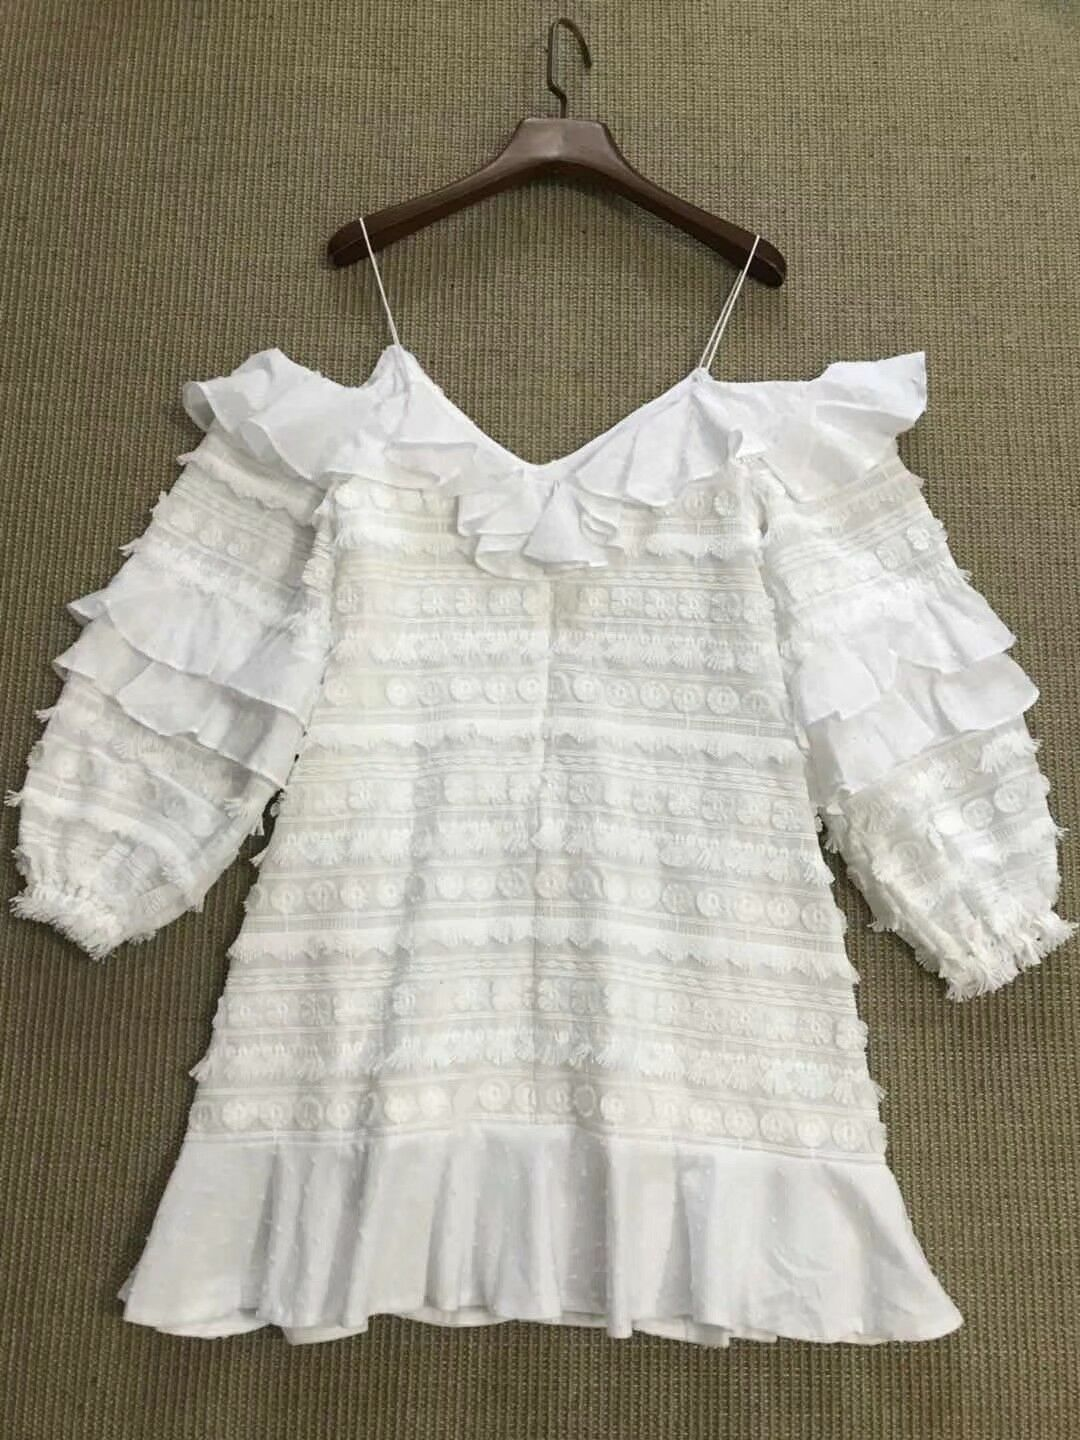 60% 60% 60% Off  Authentic ALEXIS Calypso Dress  451 - XS Pink White 4a7d4f